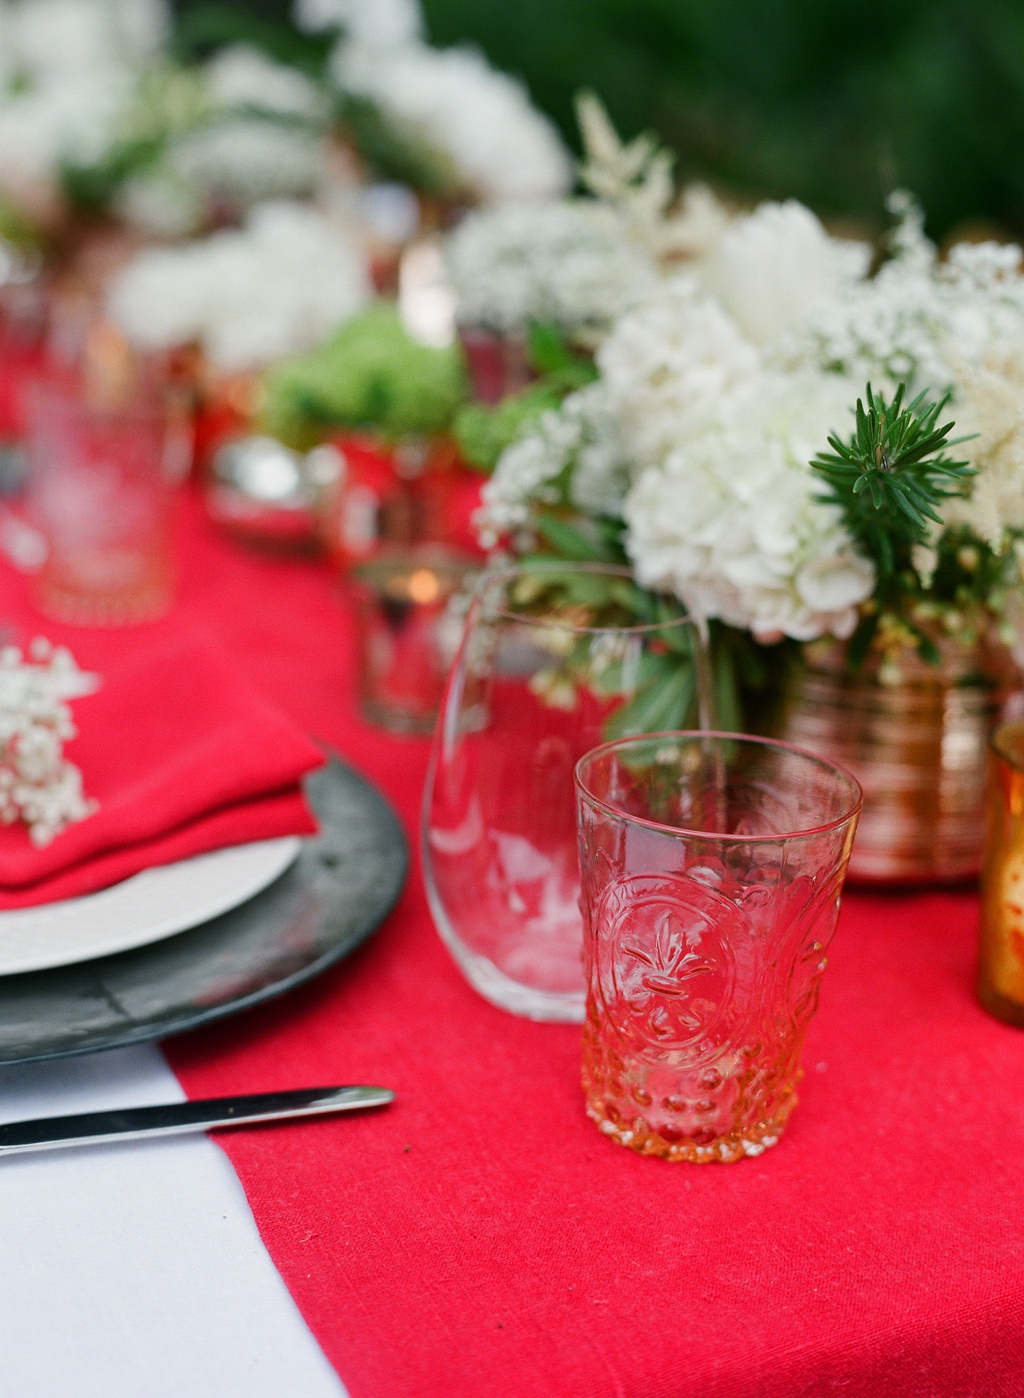 Styled-wedding-santa-barbara-chic-beaux-arts-photographie-italian-bohemian-wedding-venue-table-setting-red-white-flowers-antique-glass-033.full